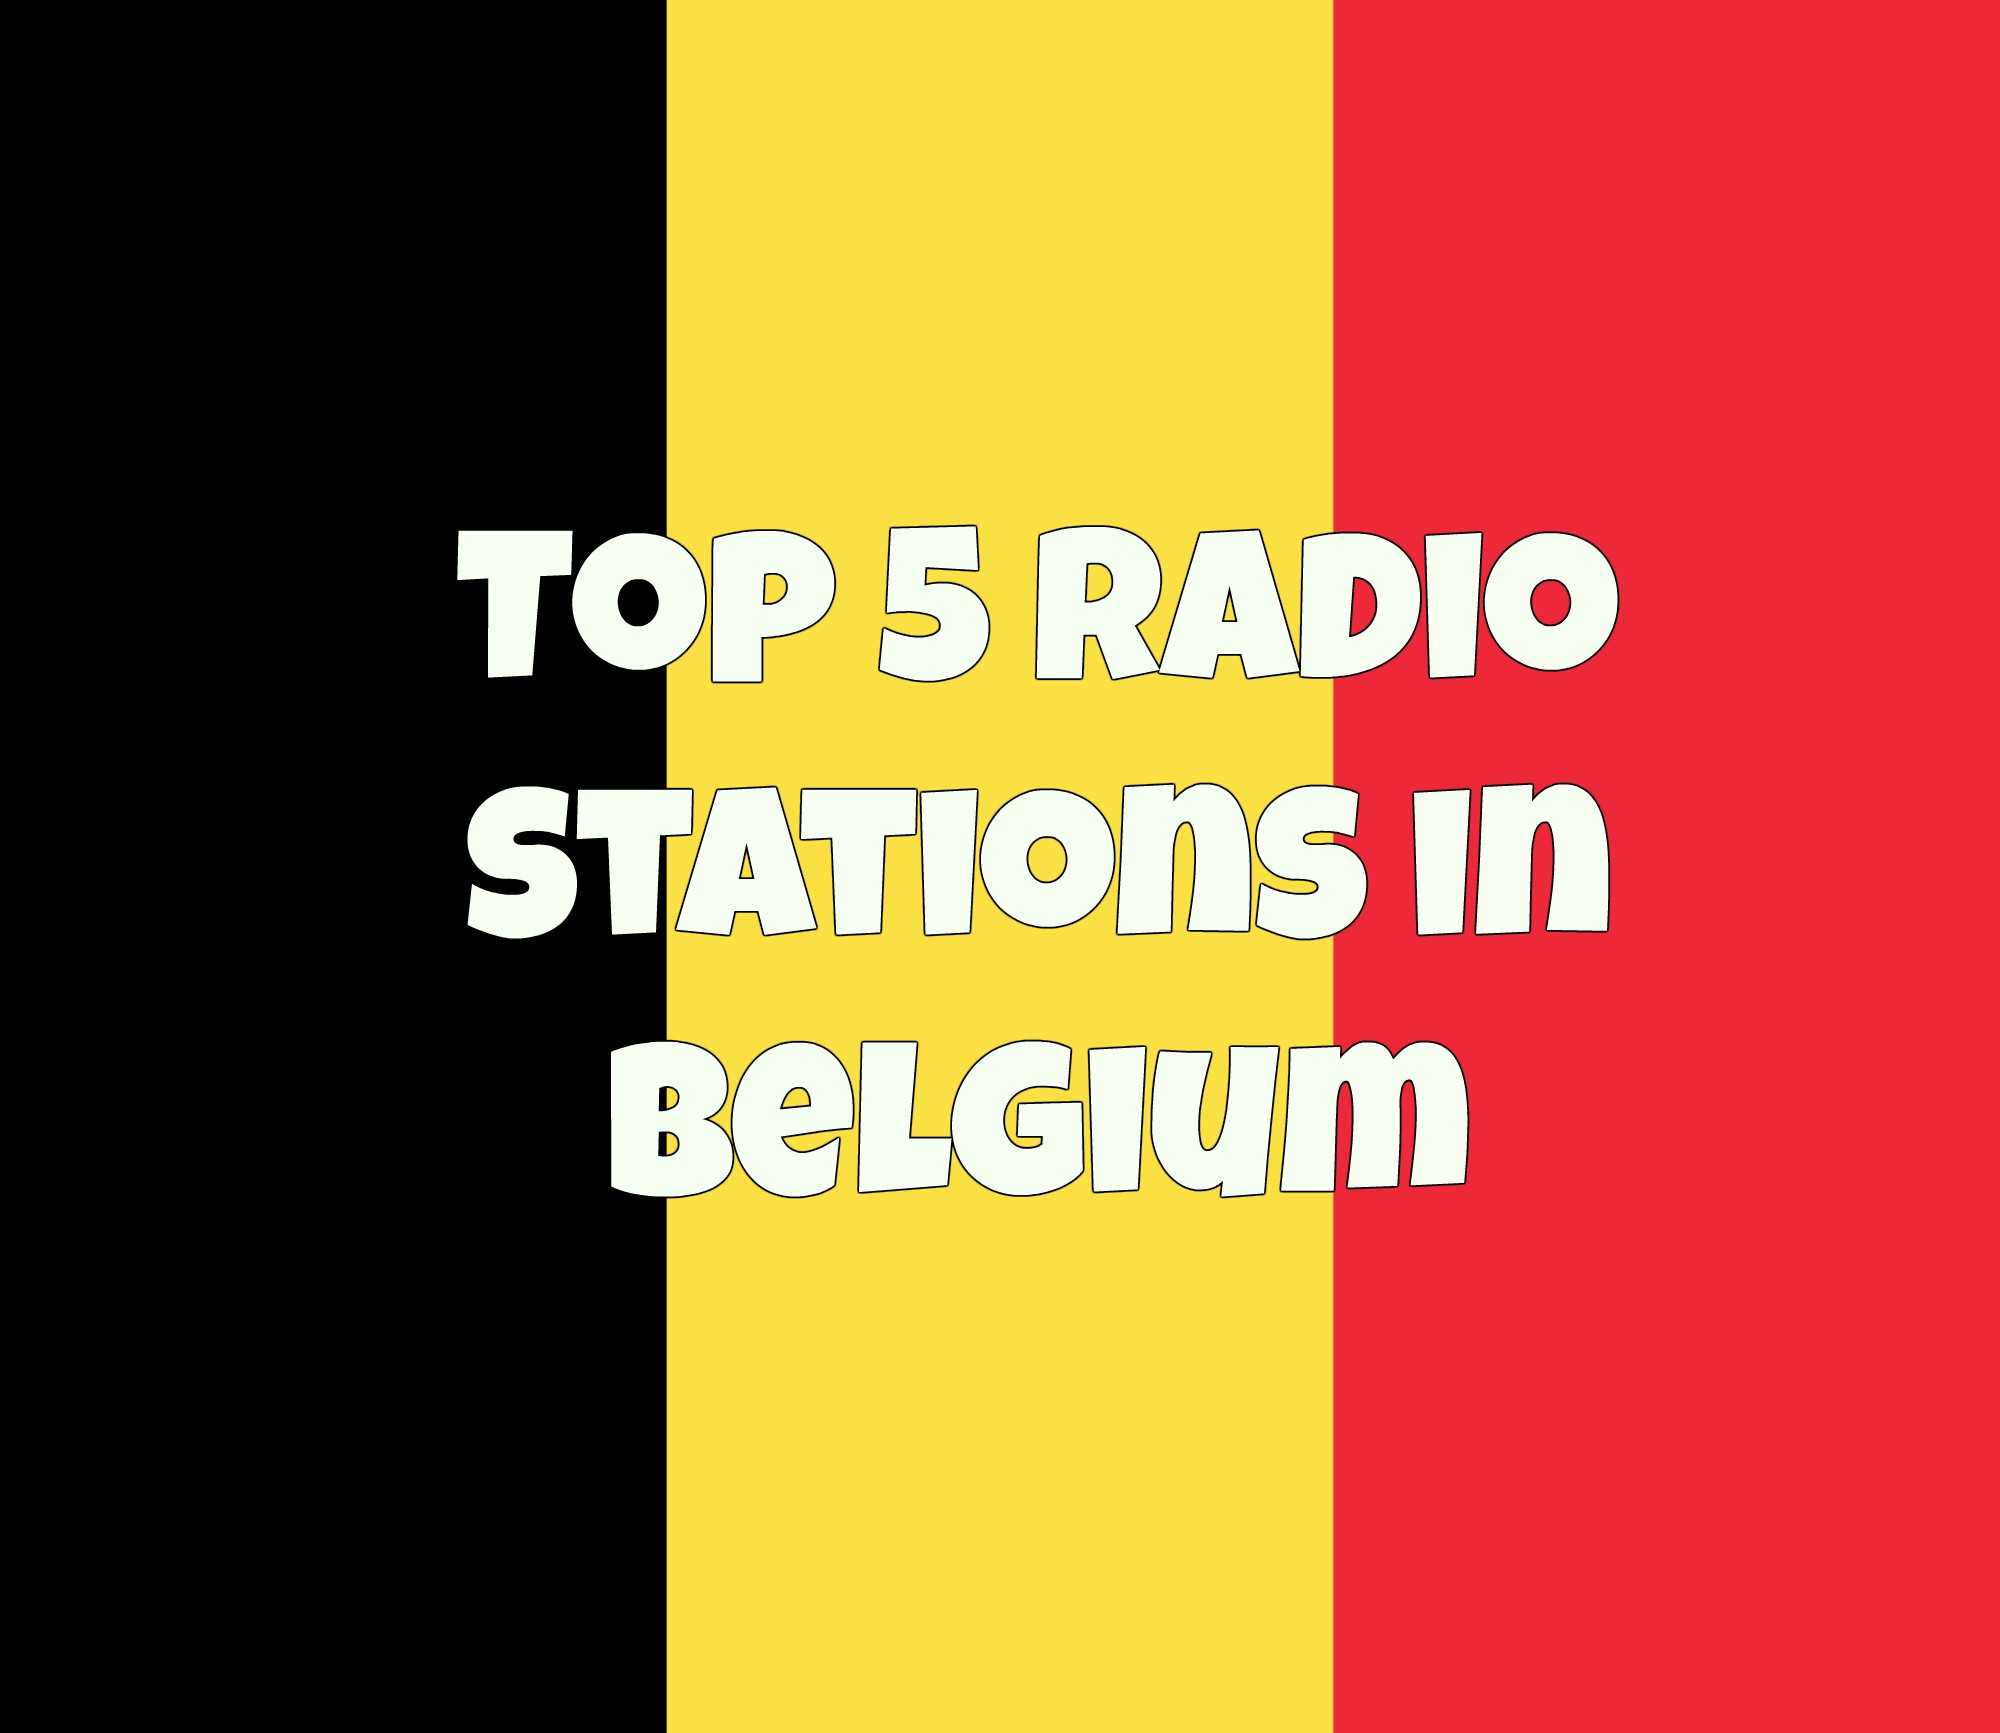 Top5 radio stations in Belgium online